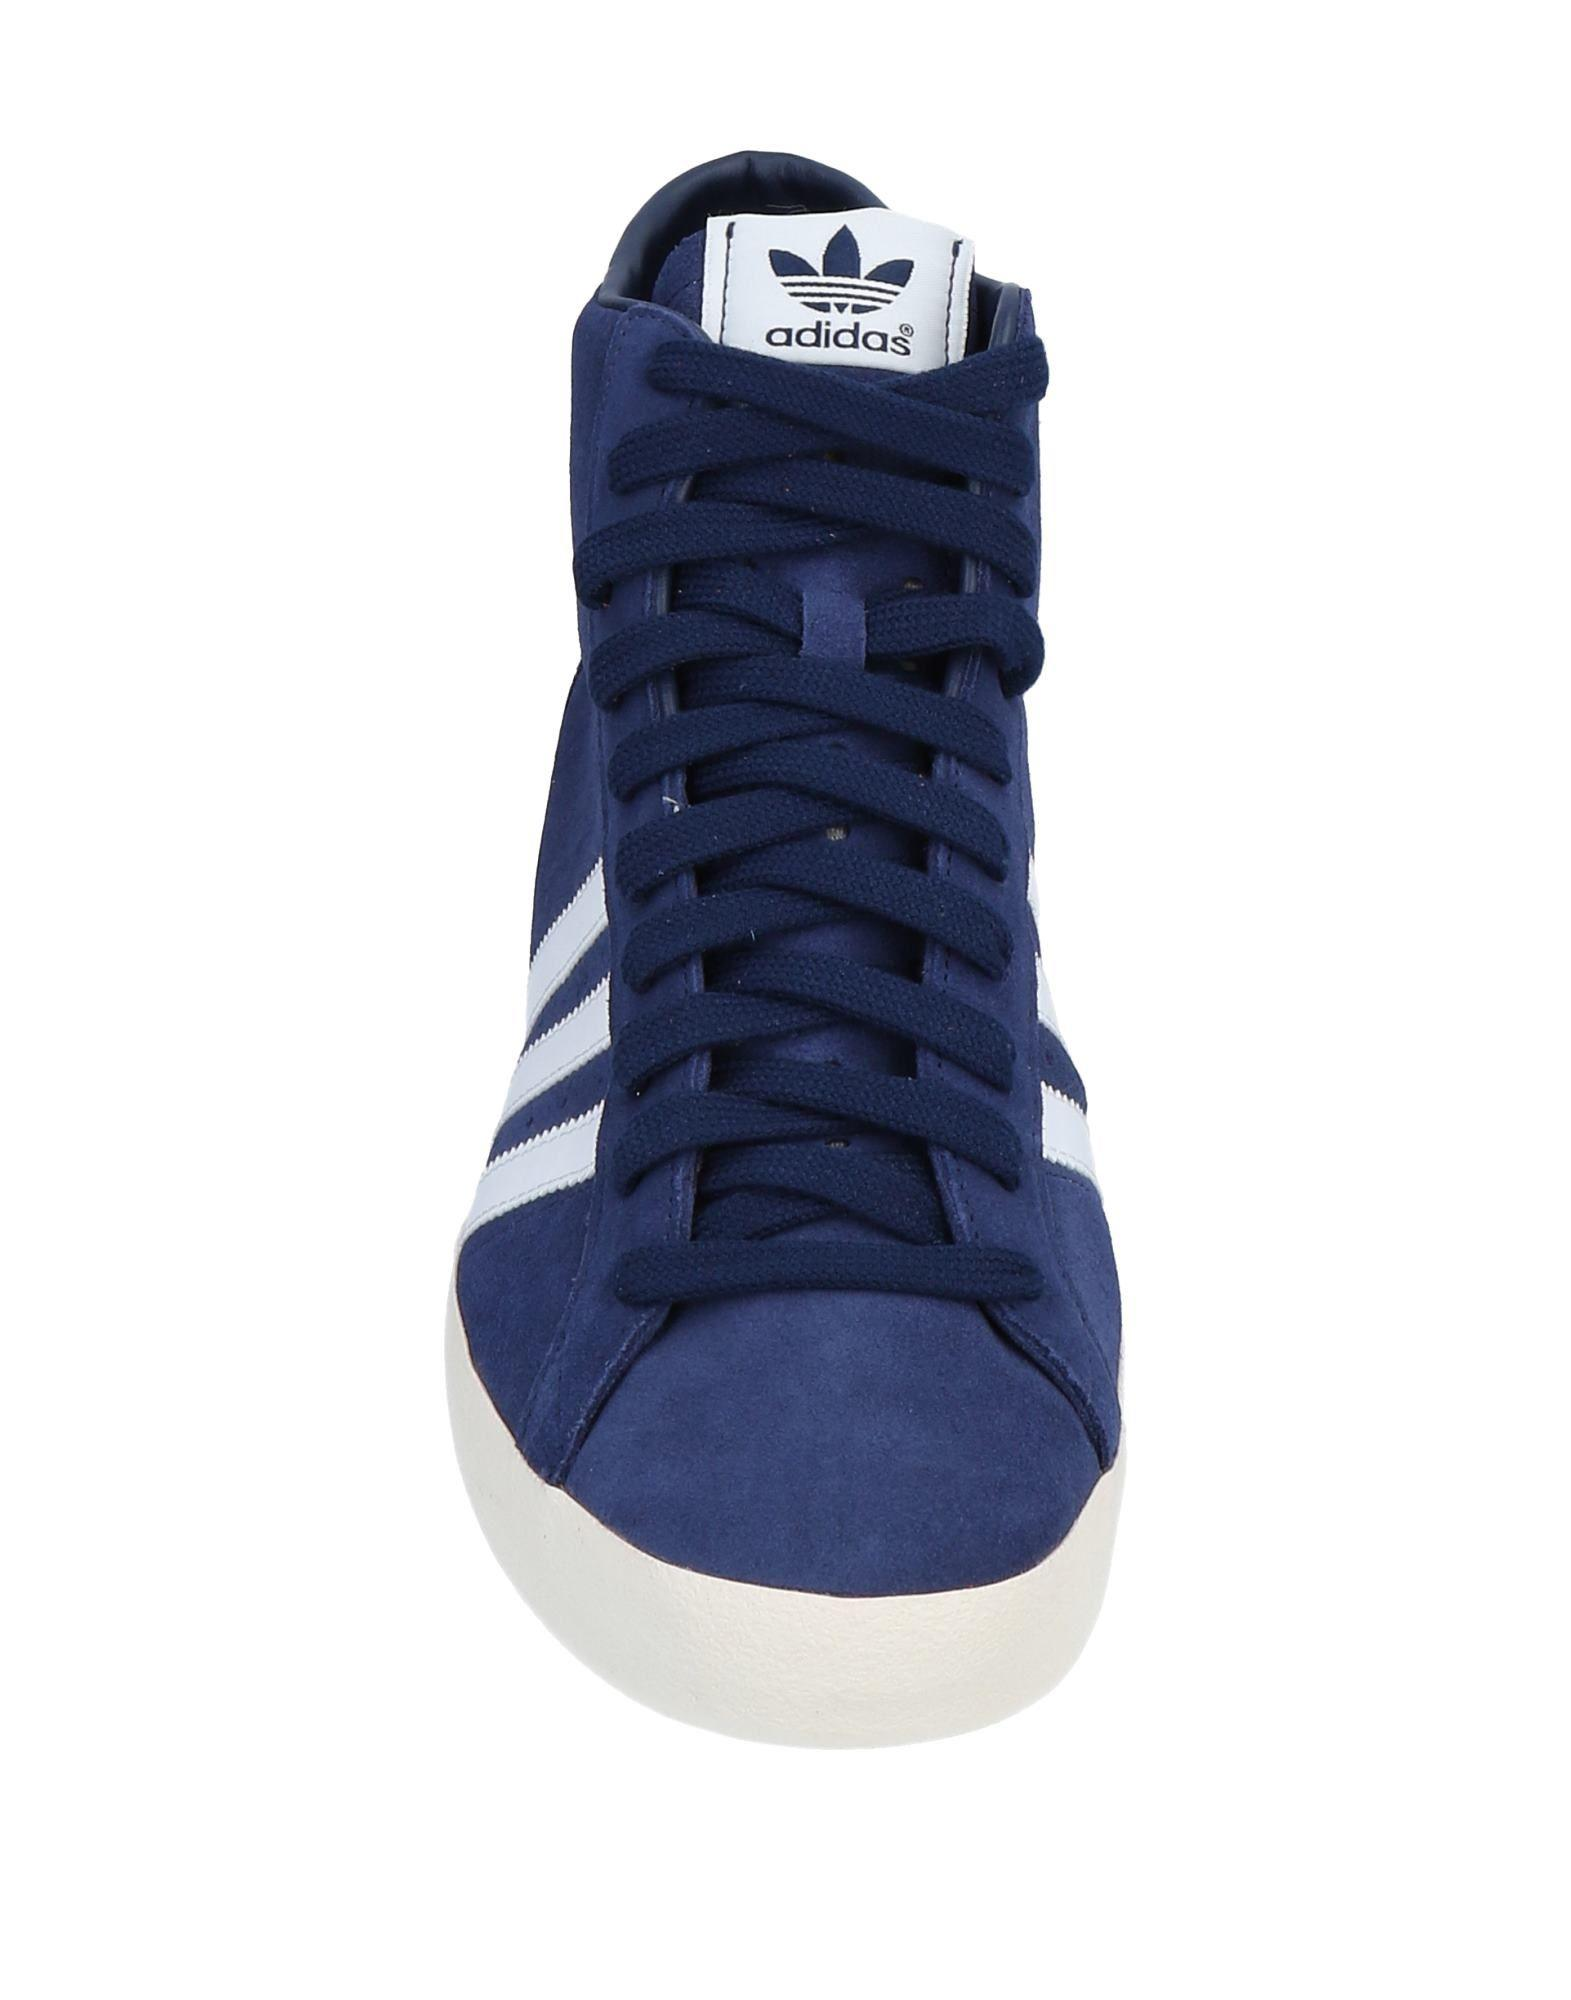 info for dfe1e 8118e Adidas Originals - Blue Sneakers abotinadas for Men - Lyst. Ver en pantalla  completa